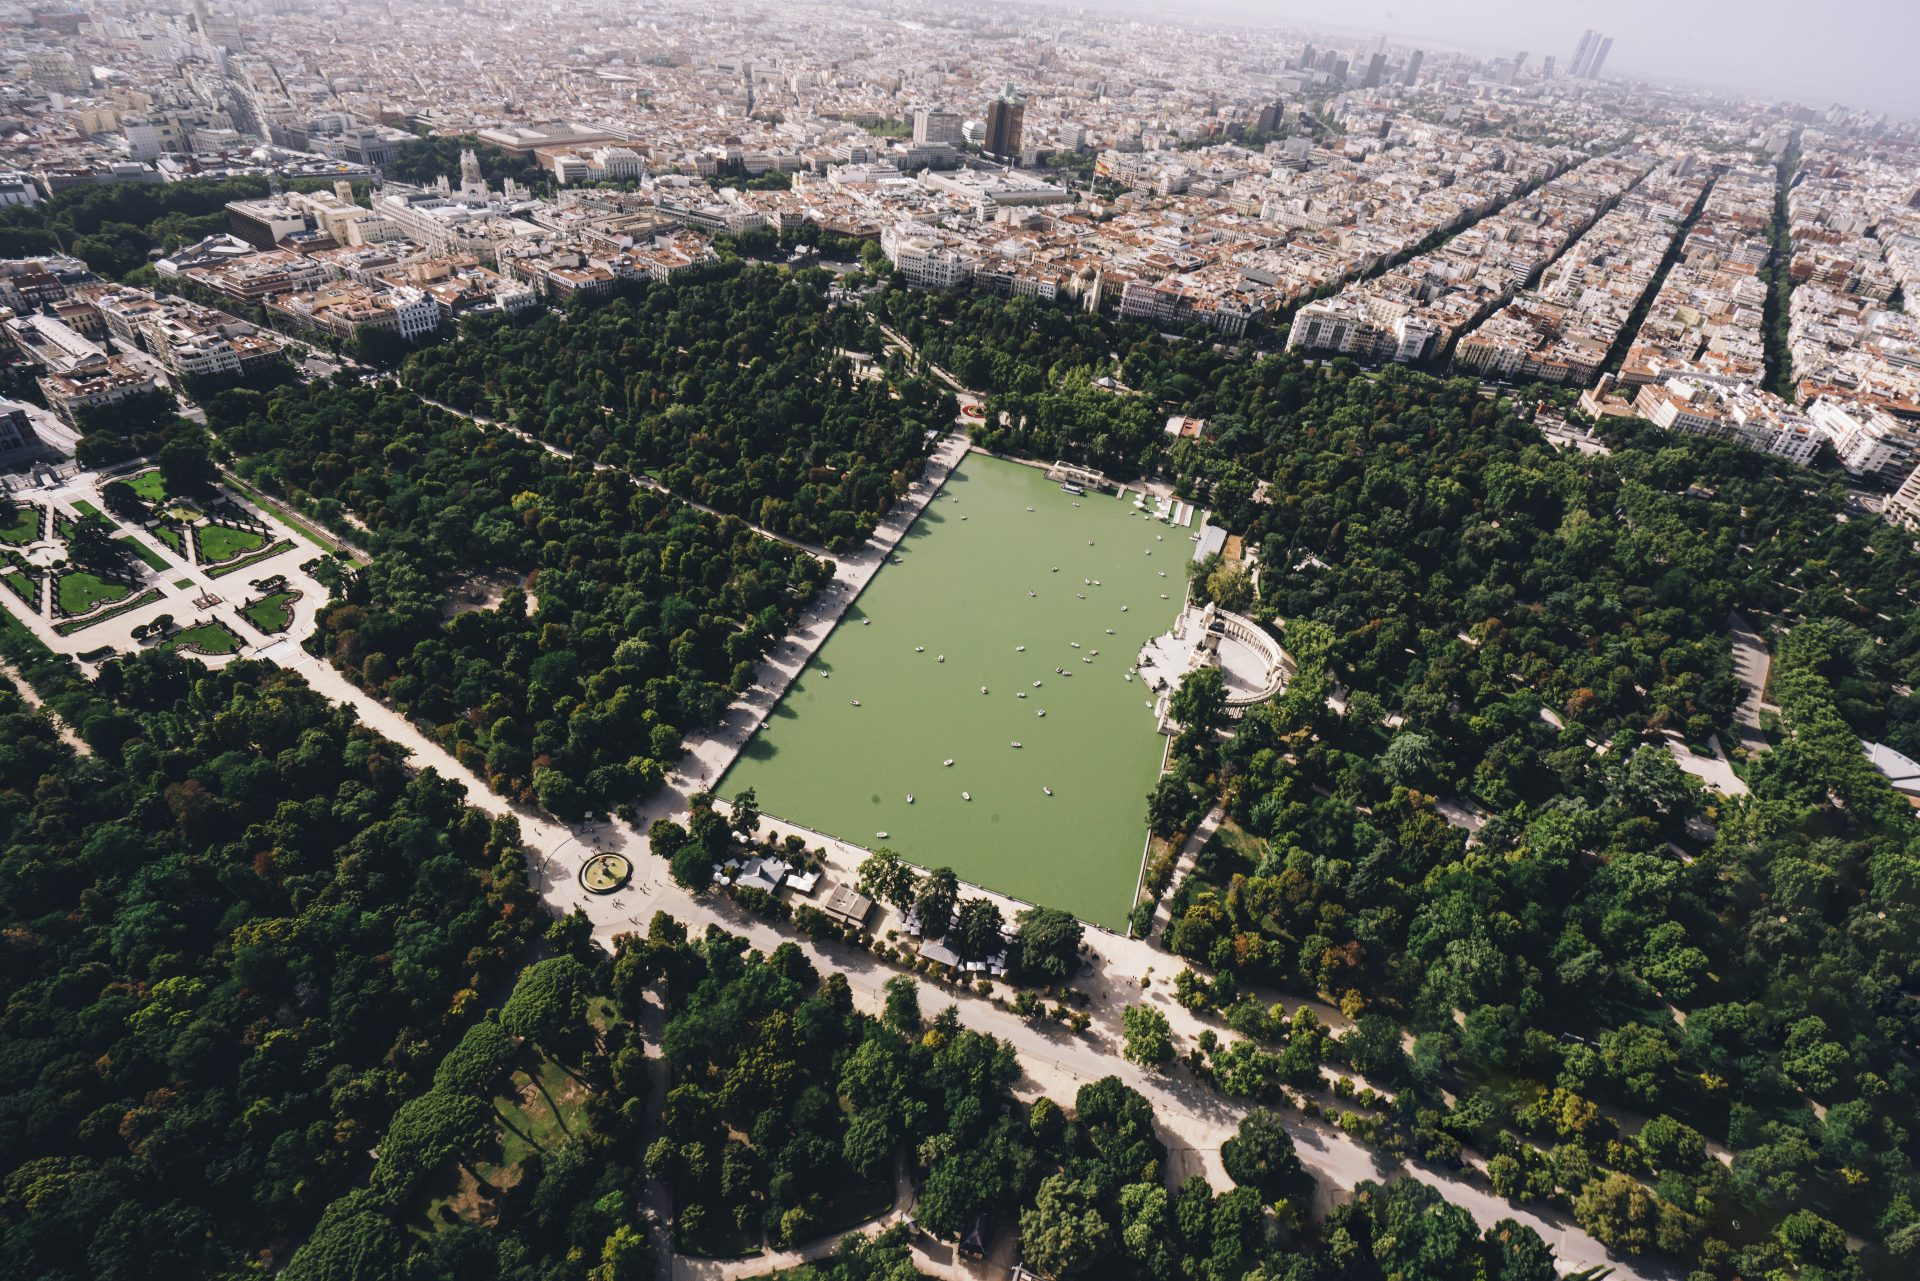 An aerial view of Madrid's Jardines del Gran Retiro area, dominated by the 1.4 km2 (350 acre) El Retiro park. Earlier this year, it was declared a UNESCO World Heritage Site, together with the nearby Paseo del Prado. Photo: Carrastock/Getty Images